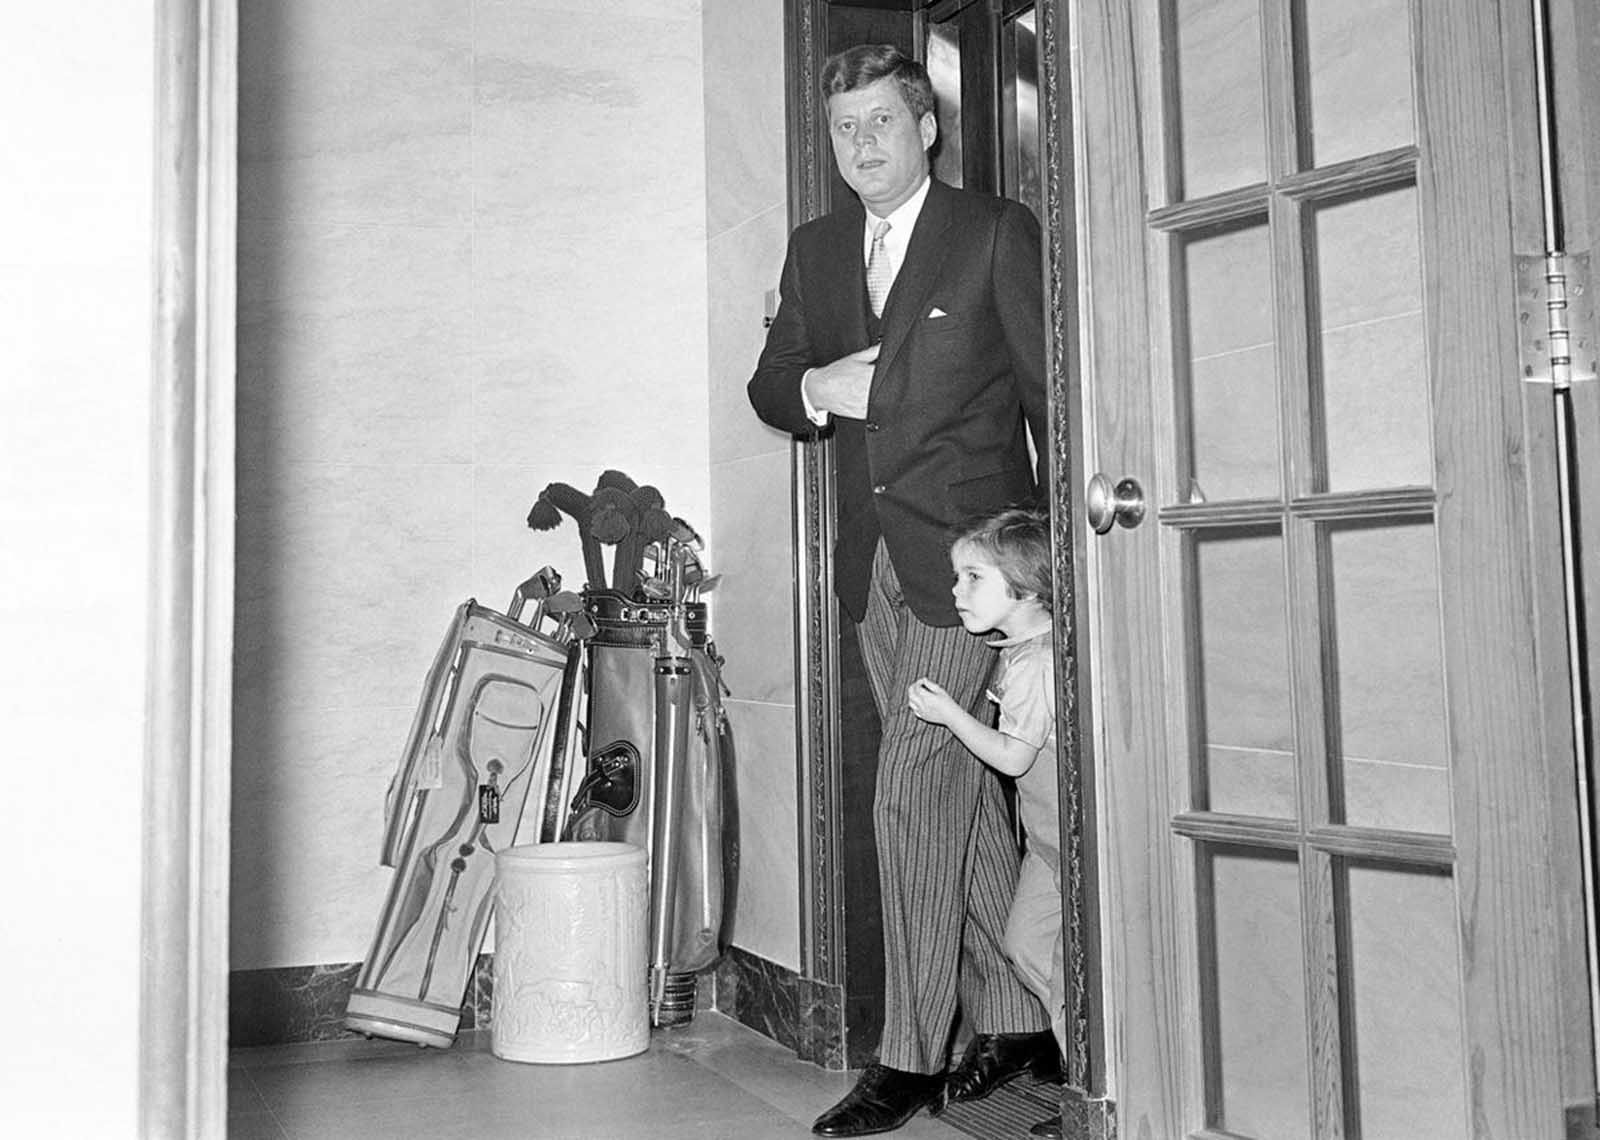 Three-year-old Caroline Kennedy pushes past her father as he leaves the elevator at the White House ground floor, on March 16, 1961, to begin a typical busy day at 9:42 A.M. President Kennedy has a strip of tape across a cut above his left eye, suffered when his head struck a table as he was bending over to pick up something for Caroline.